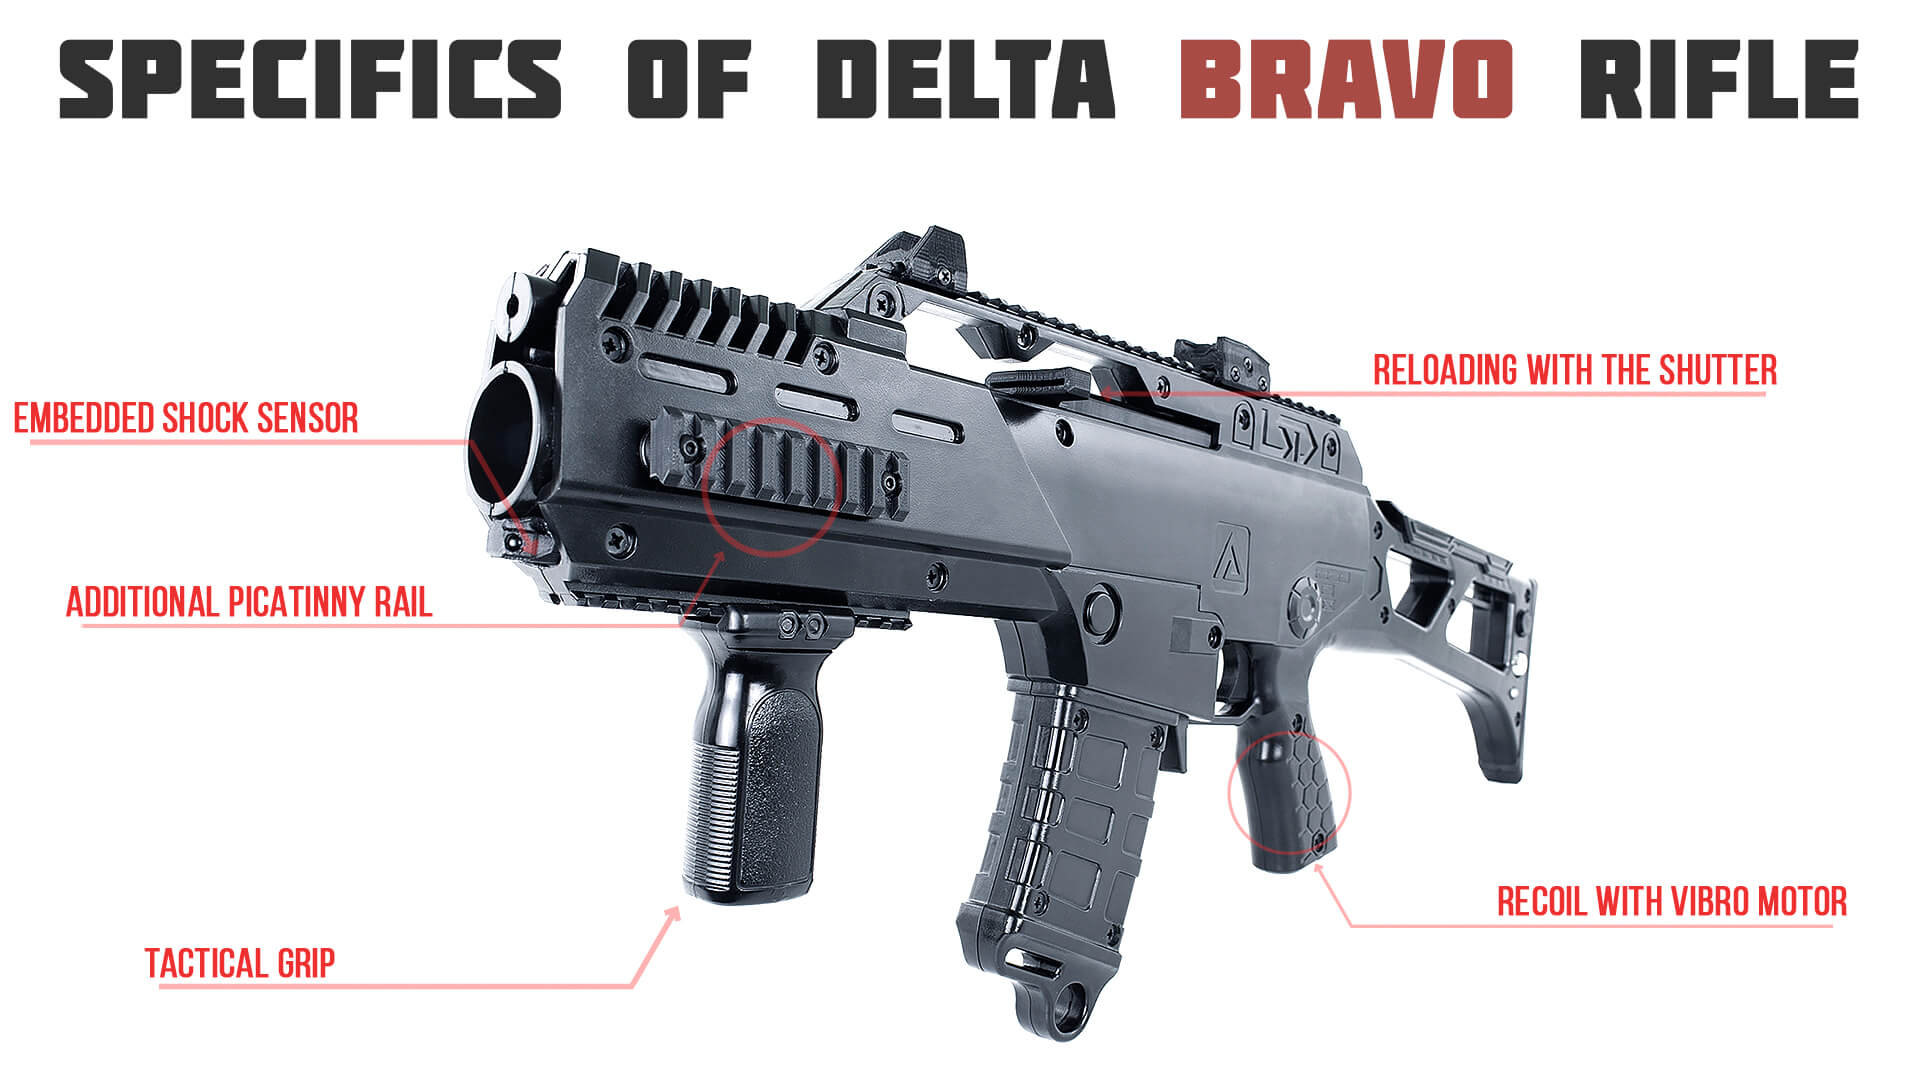 DELTA BRAVO ADVANTAGES